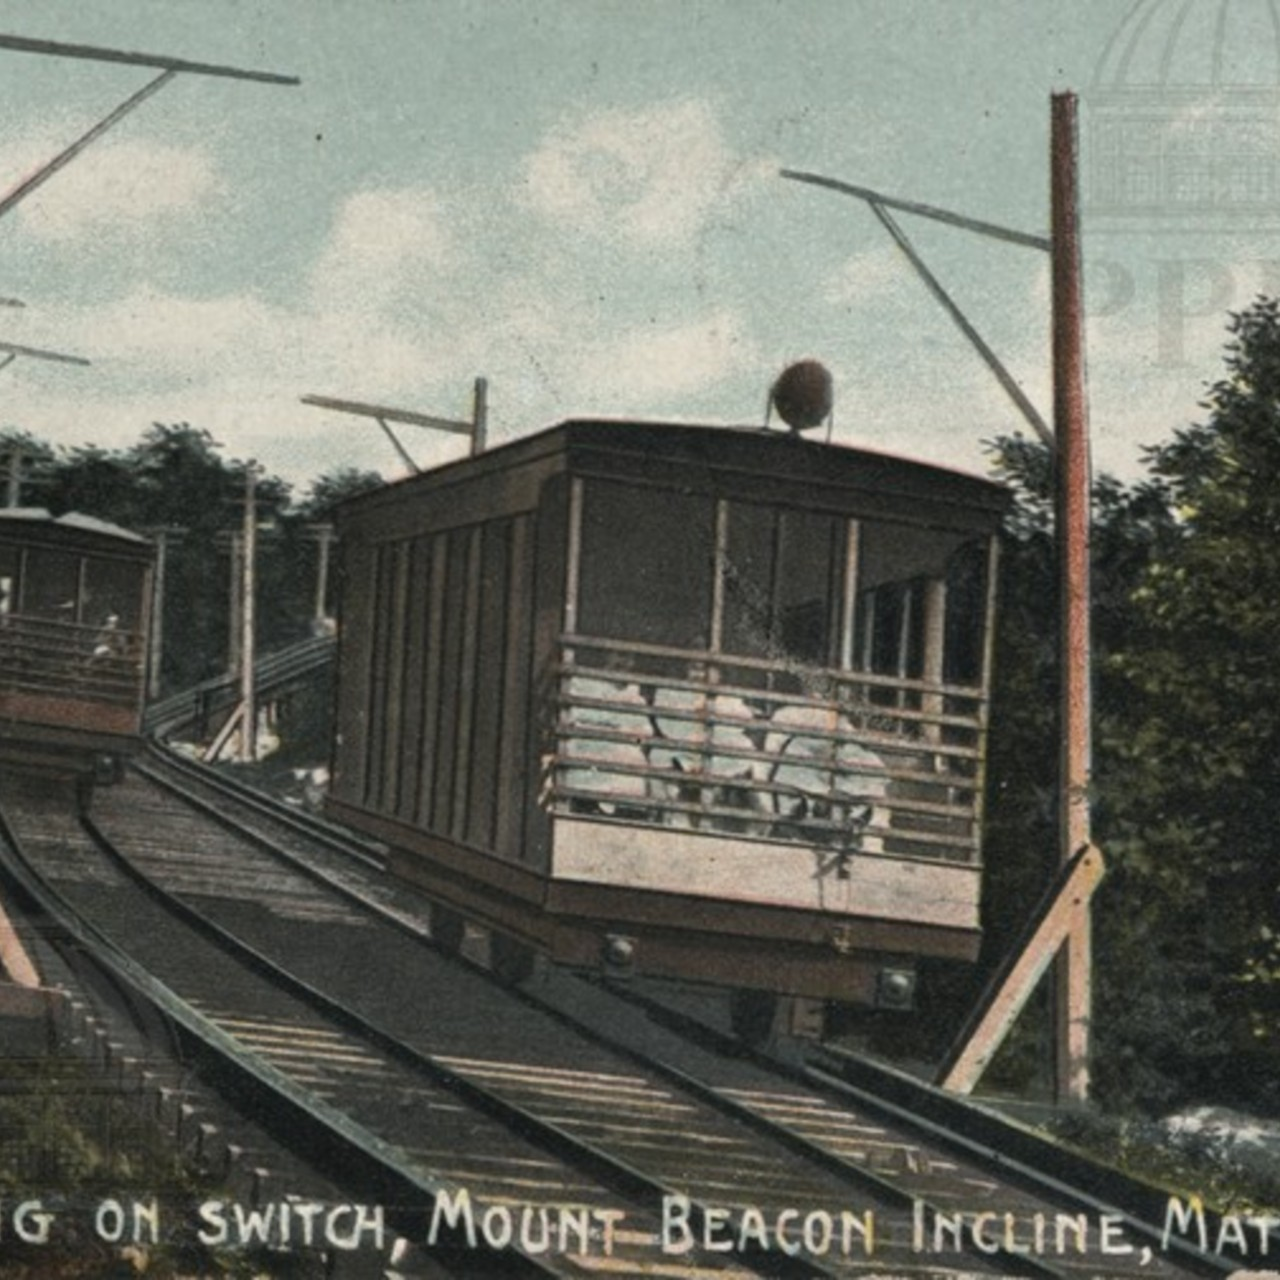 Cars Passing on Switch, Mount Beacon Incline